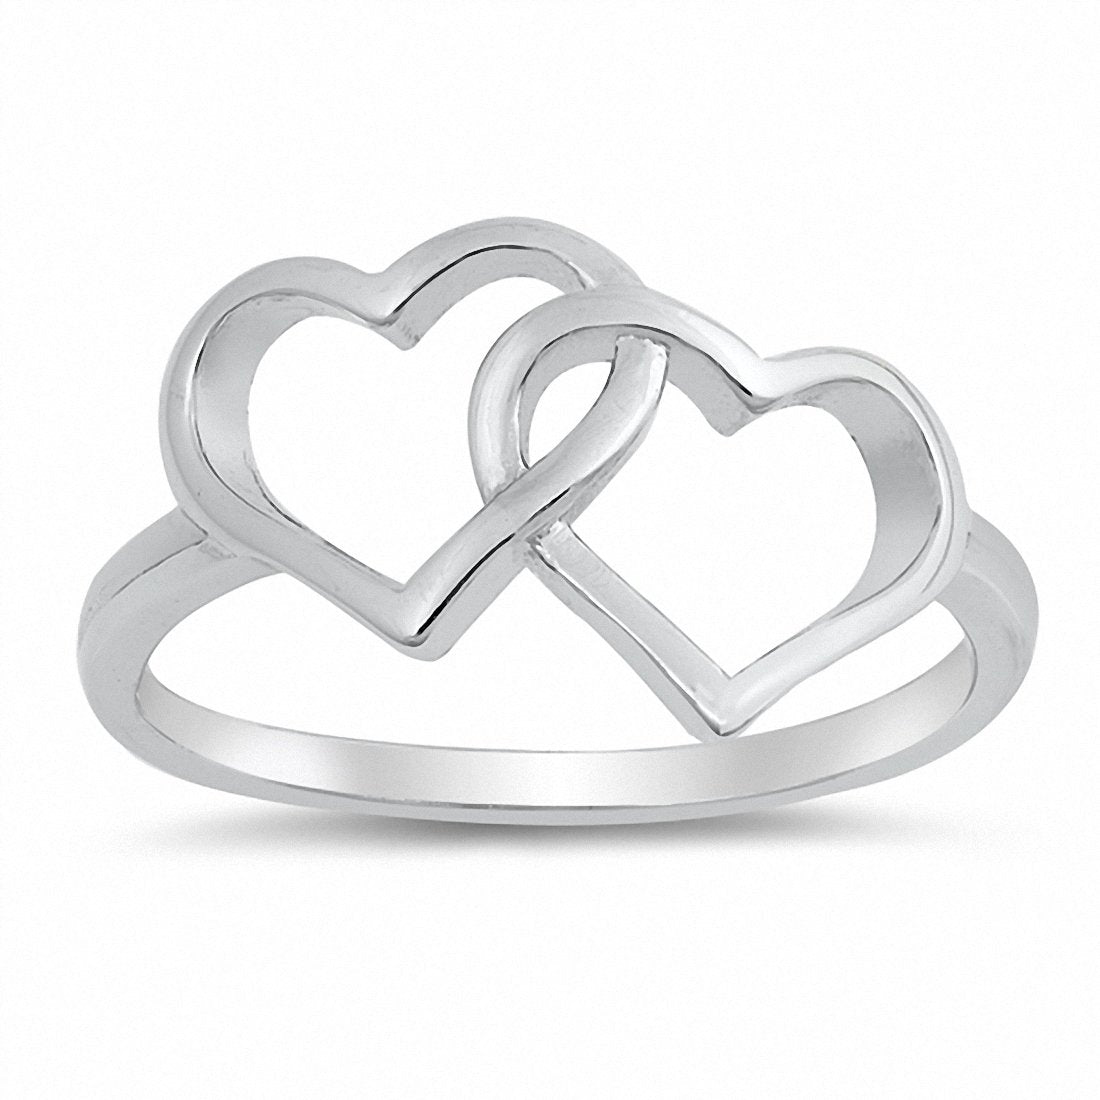 5df5f35f1 Interlocking Double Heart Ring Band 925 Sterling Silver Choose Color ...